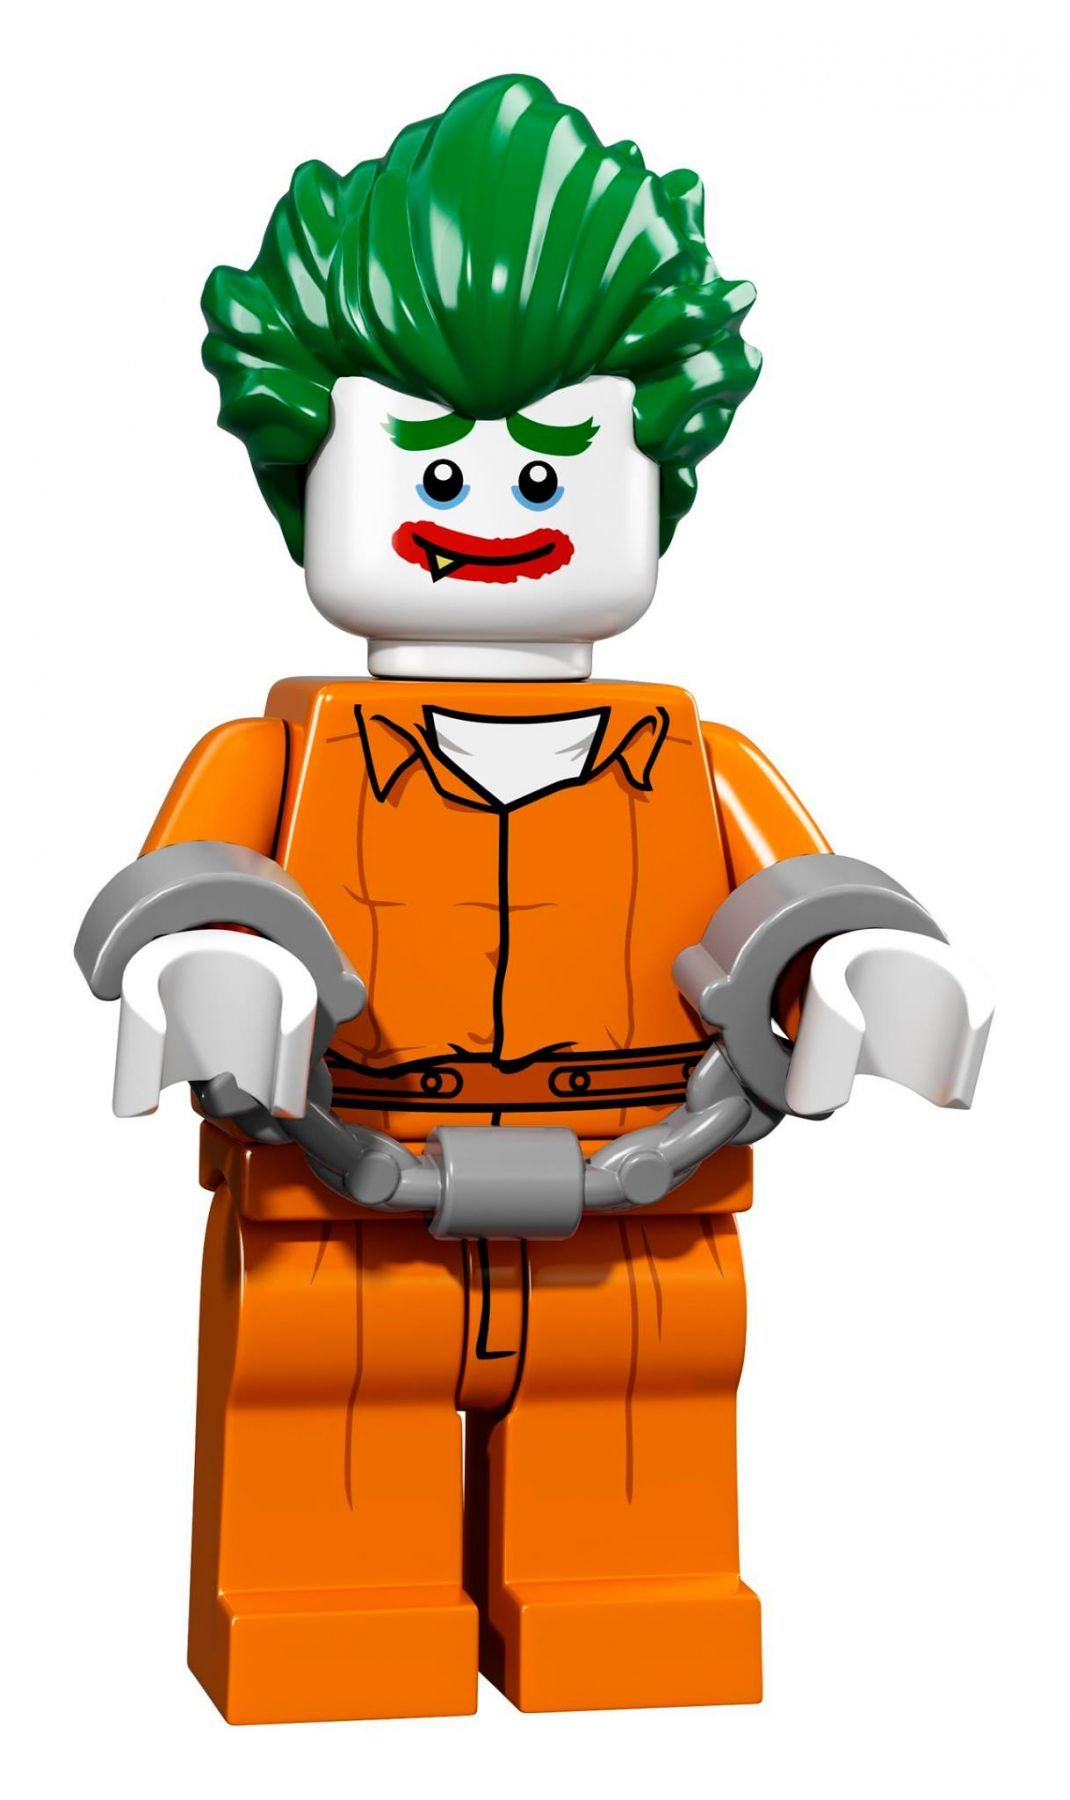 LEGO Collectable Minifigures 71017 LEGO® Batman Movie Minifiguren Serie 71017_LEGO_Batman_Movie_Minifiguren_Serie_figur12.jpg